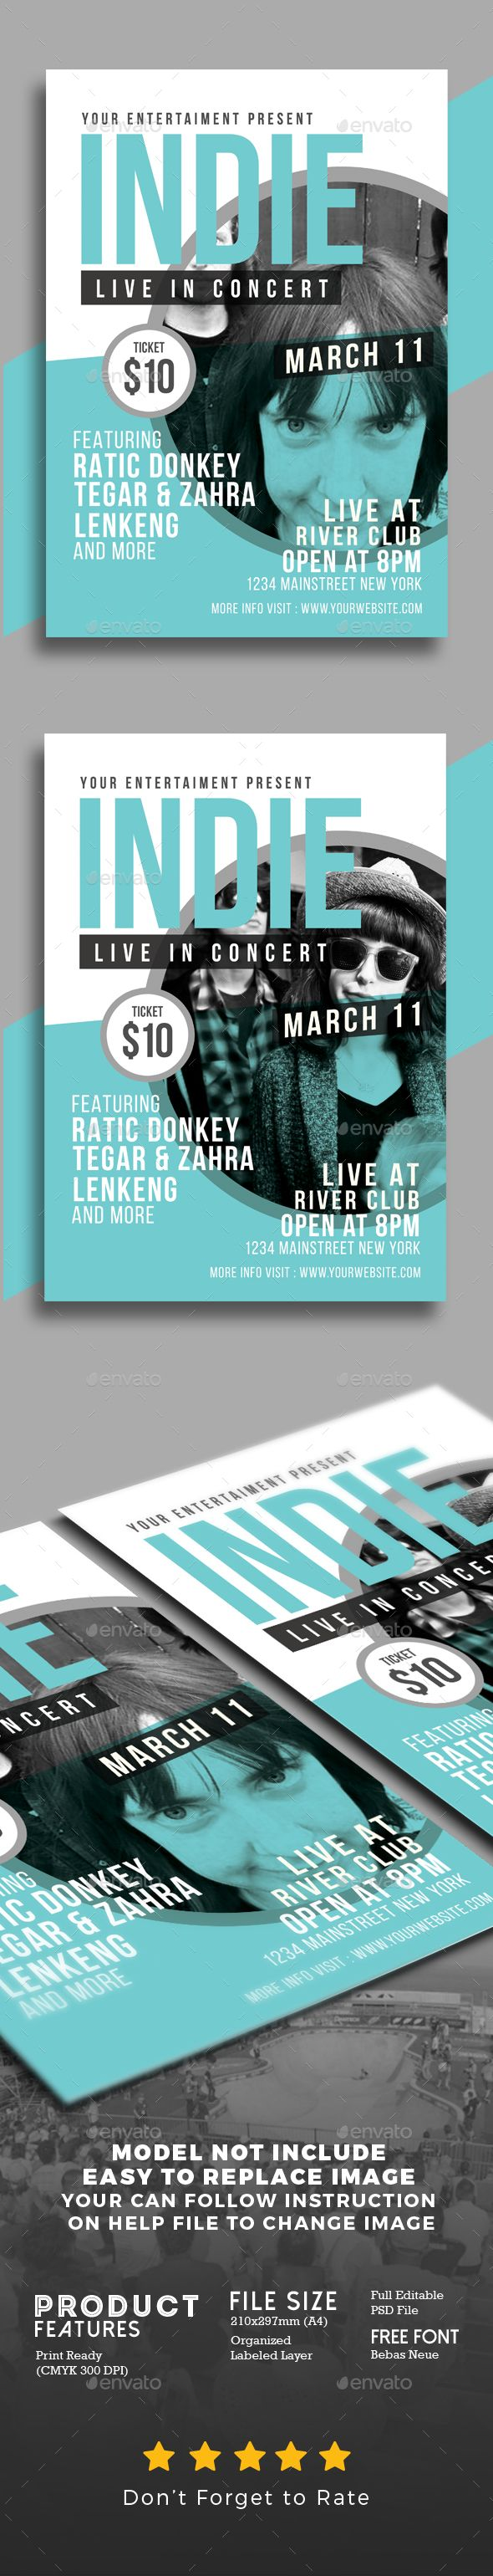 Indie Show Flyer Template PSD